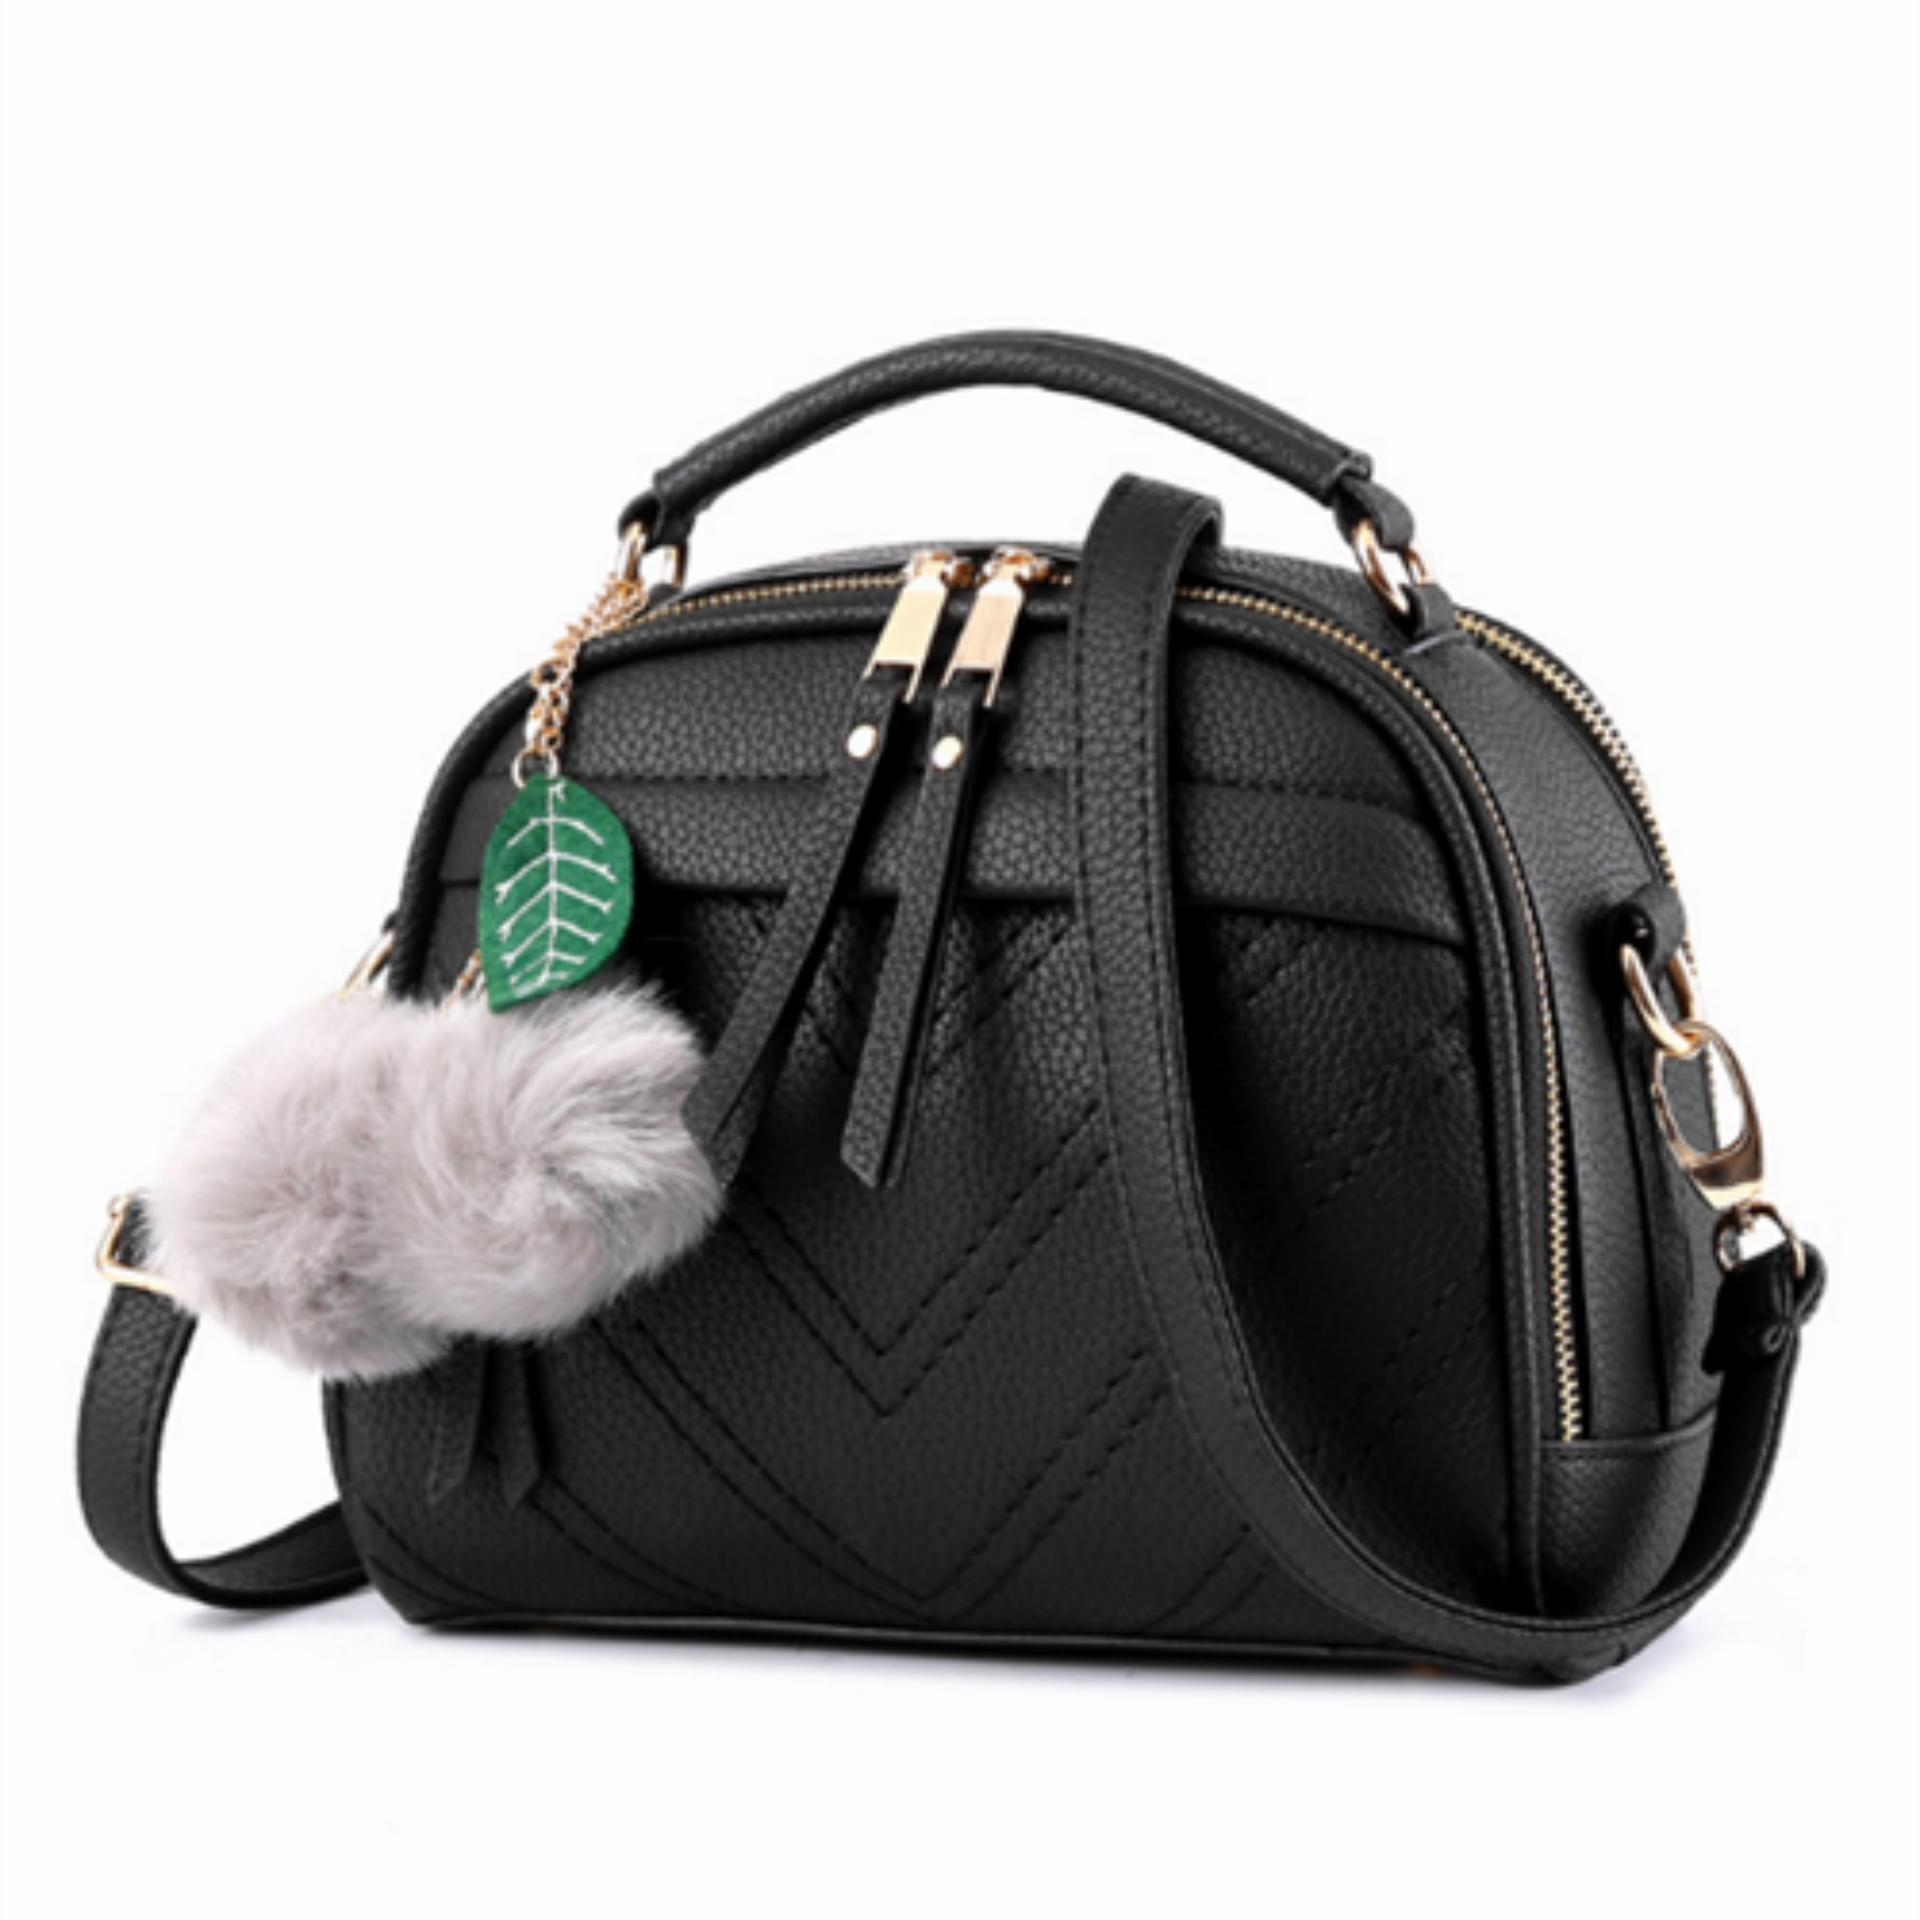 Vicria Tas Branded Wanita With Pompom - High Quality PU Leather Korean Elegant Bag Style BB2073